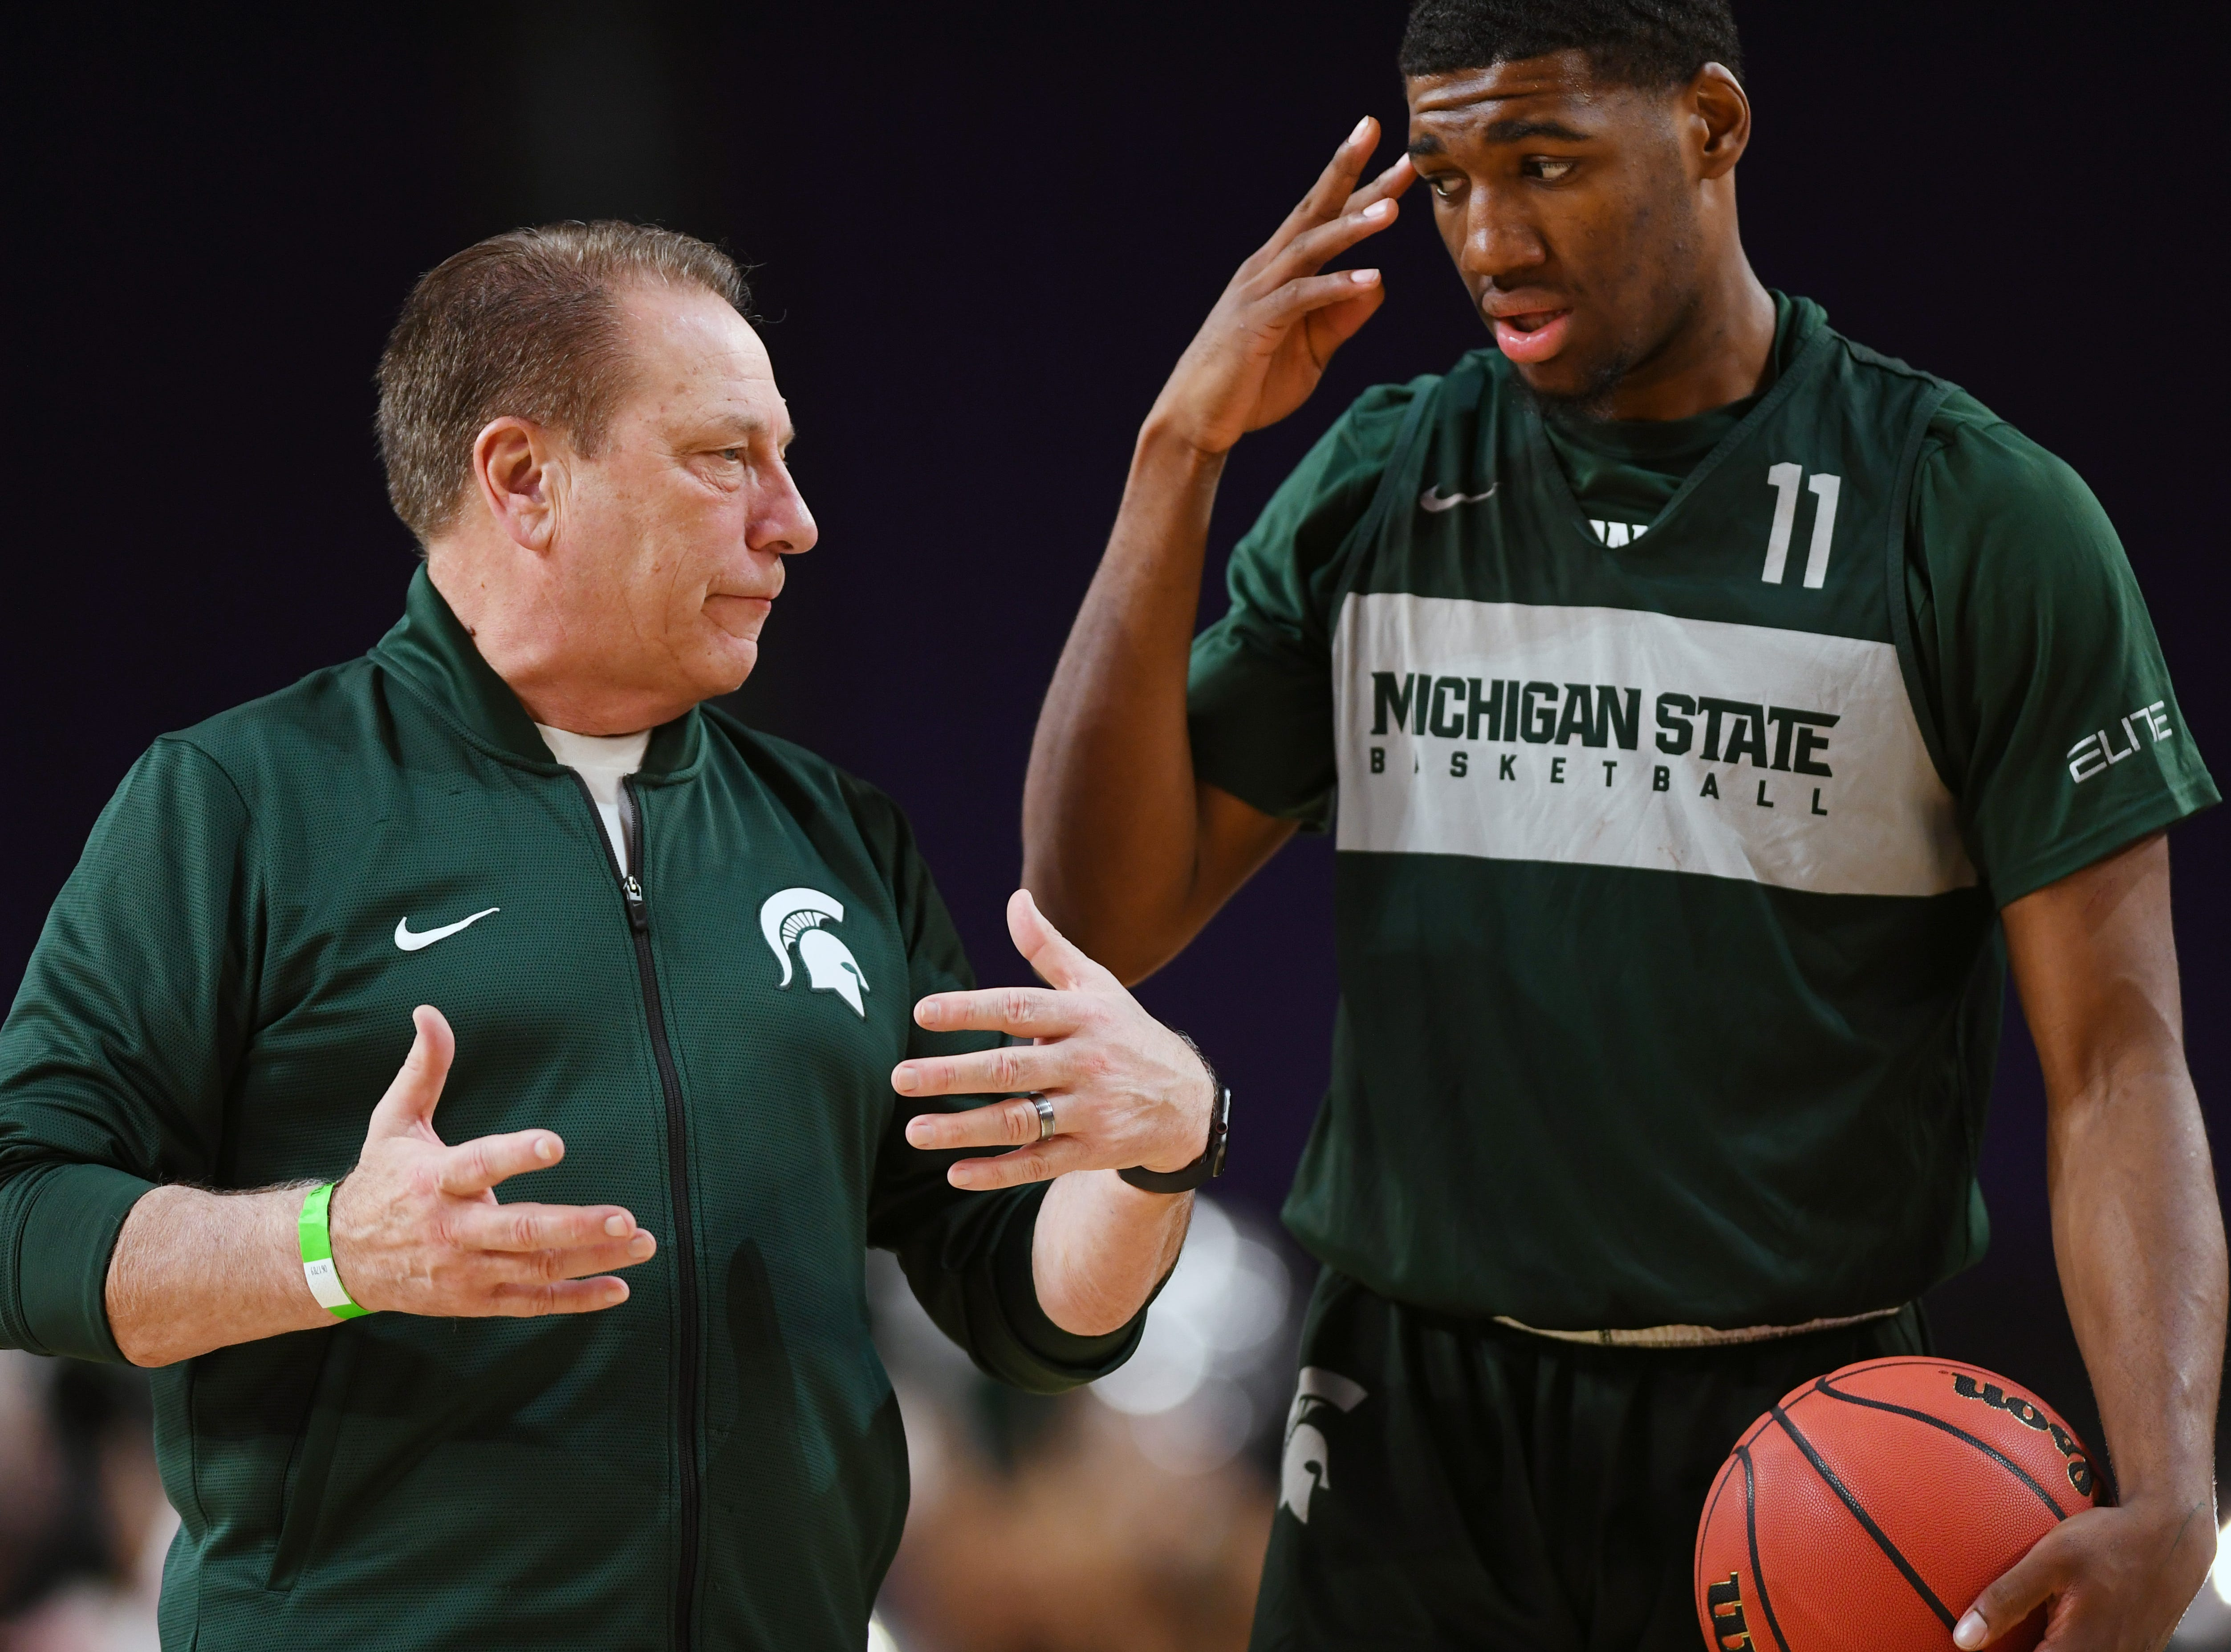 Apr 5, 2019; Minneapolis, MN, USA; Michigan State Spartans head coach Tom Izzo talks with forward Aaron Henry (11) during practice for the 2019 men's Final Four at US Bank Stadium. Mandatory Credit: Bob Donnan-USA TODAY Sports